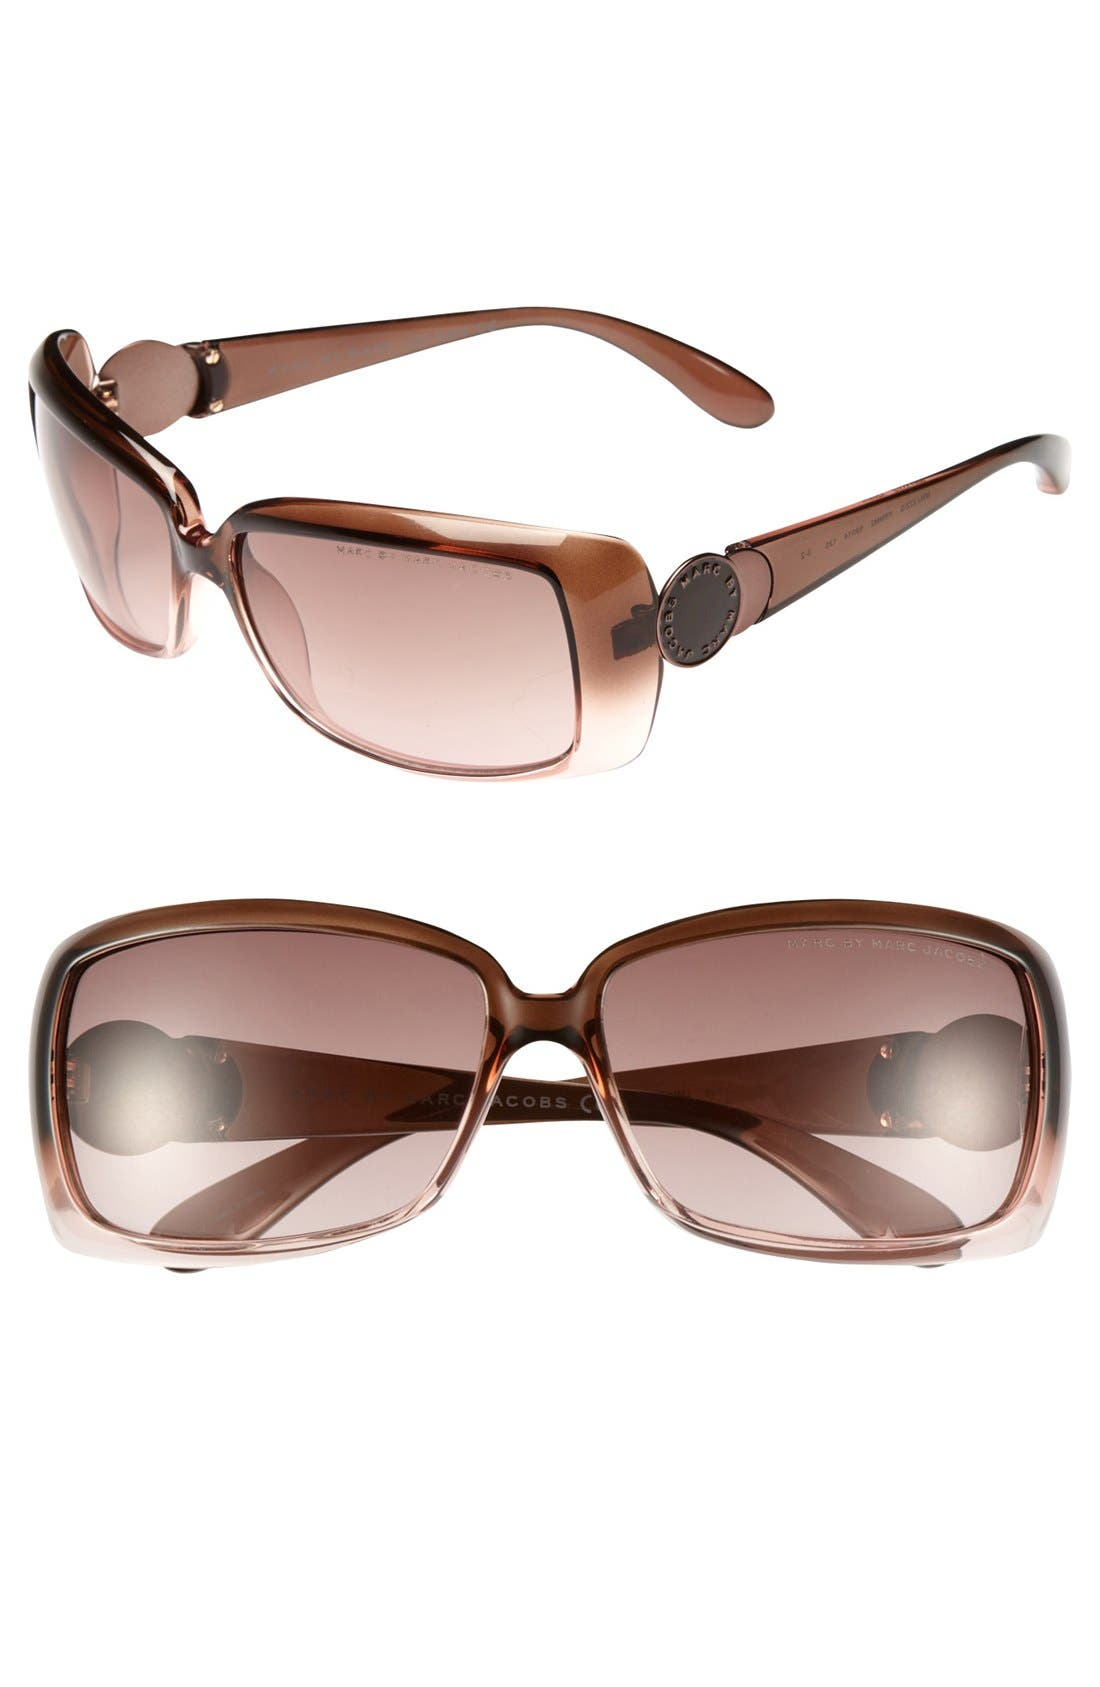 Alternate Image 1 Selected - MARC BY MARC JACOBS 59mm Rectangular Sunglasses